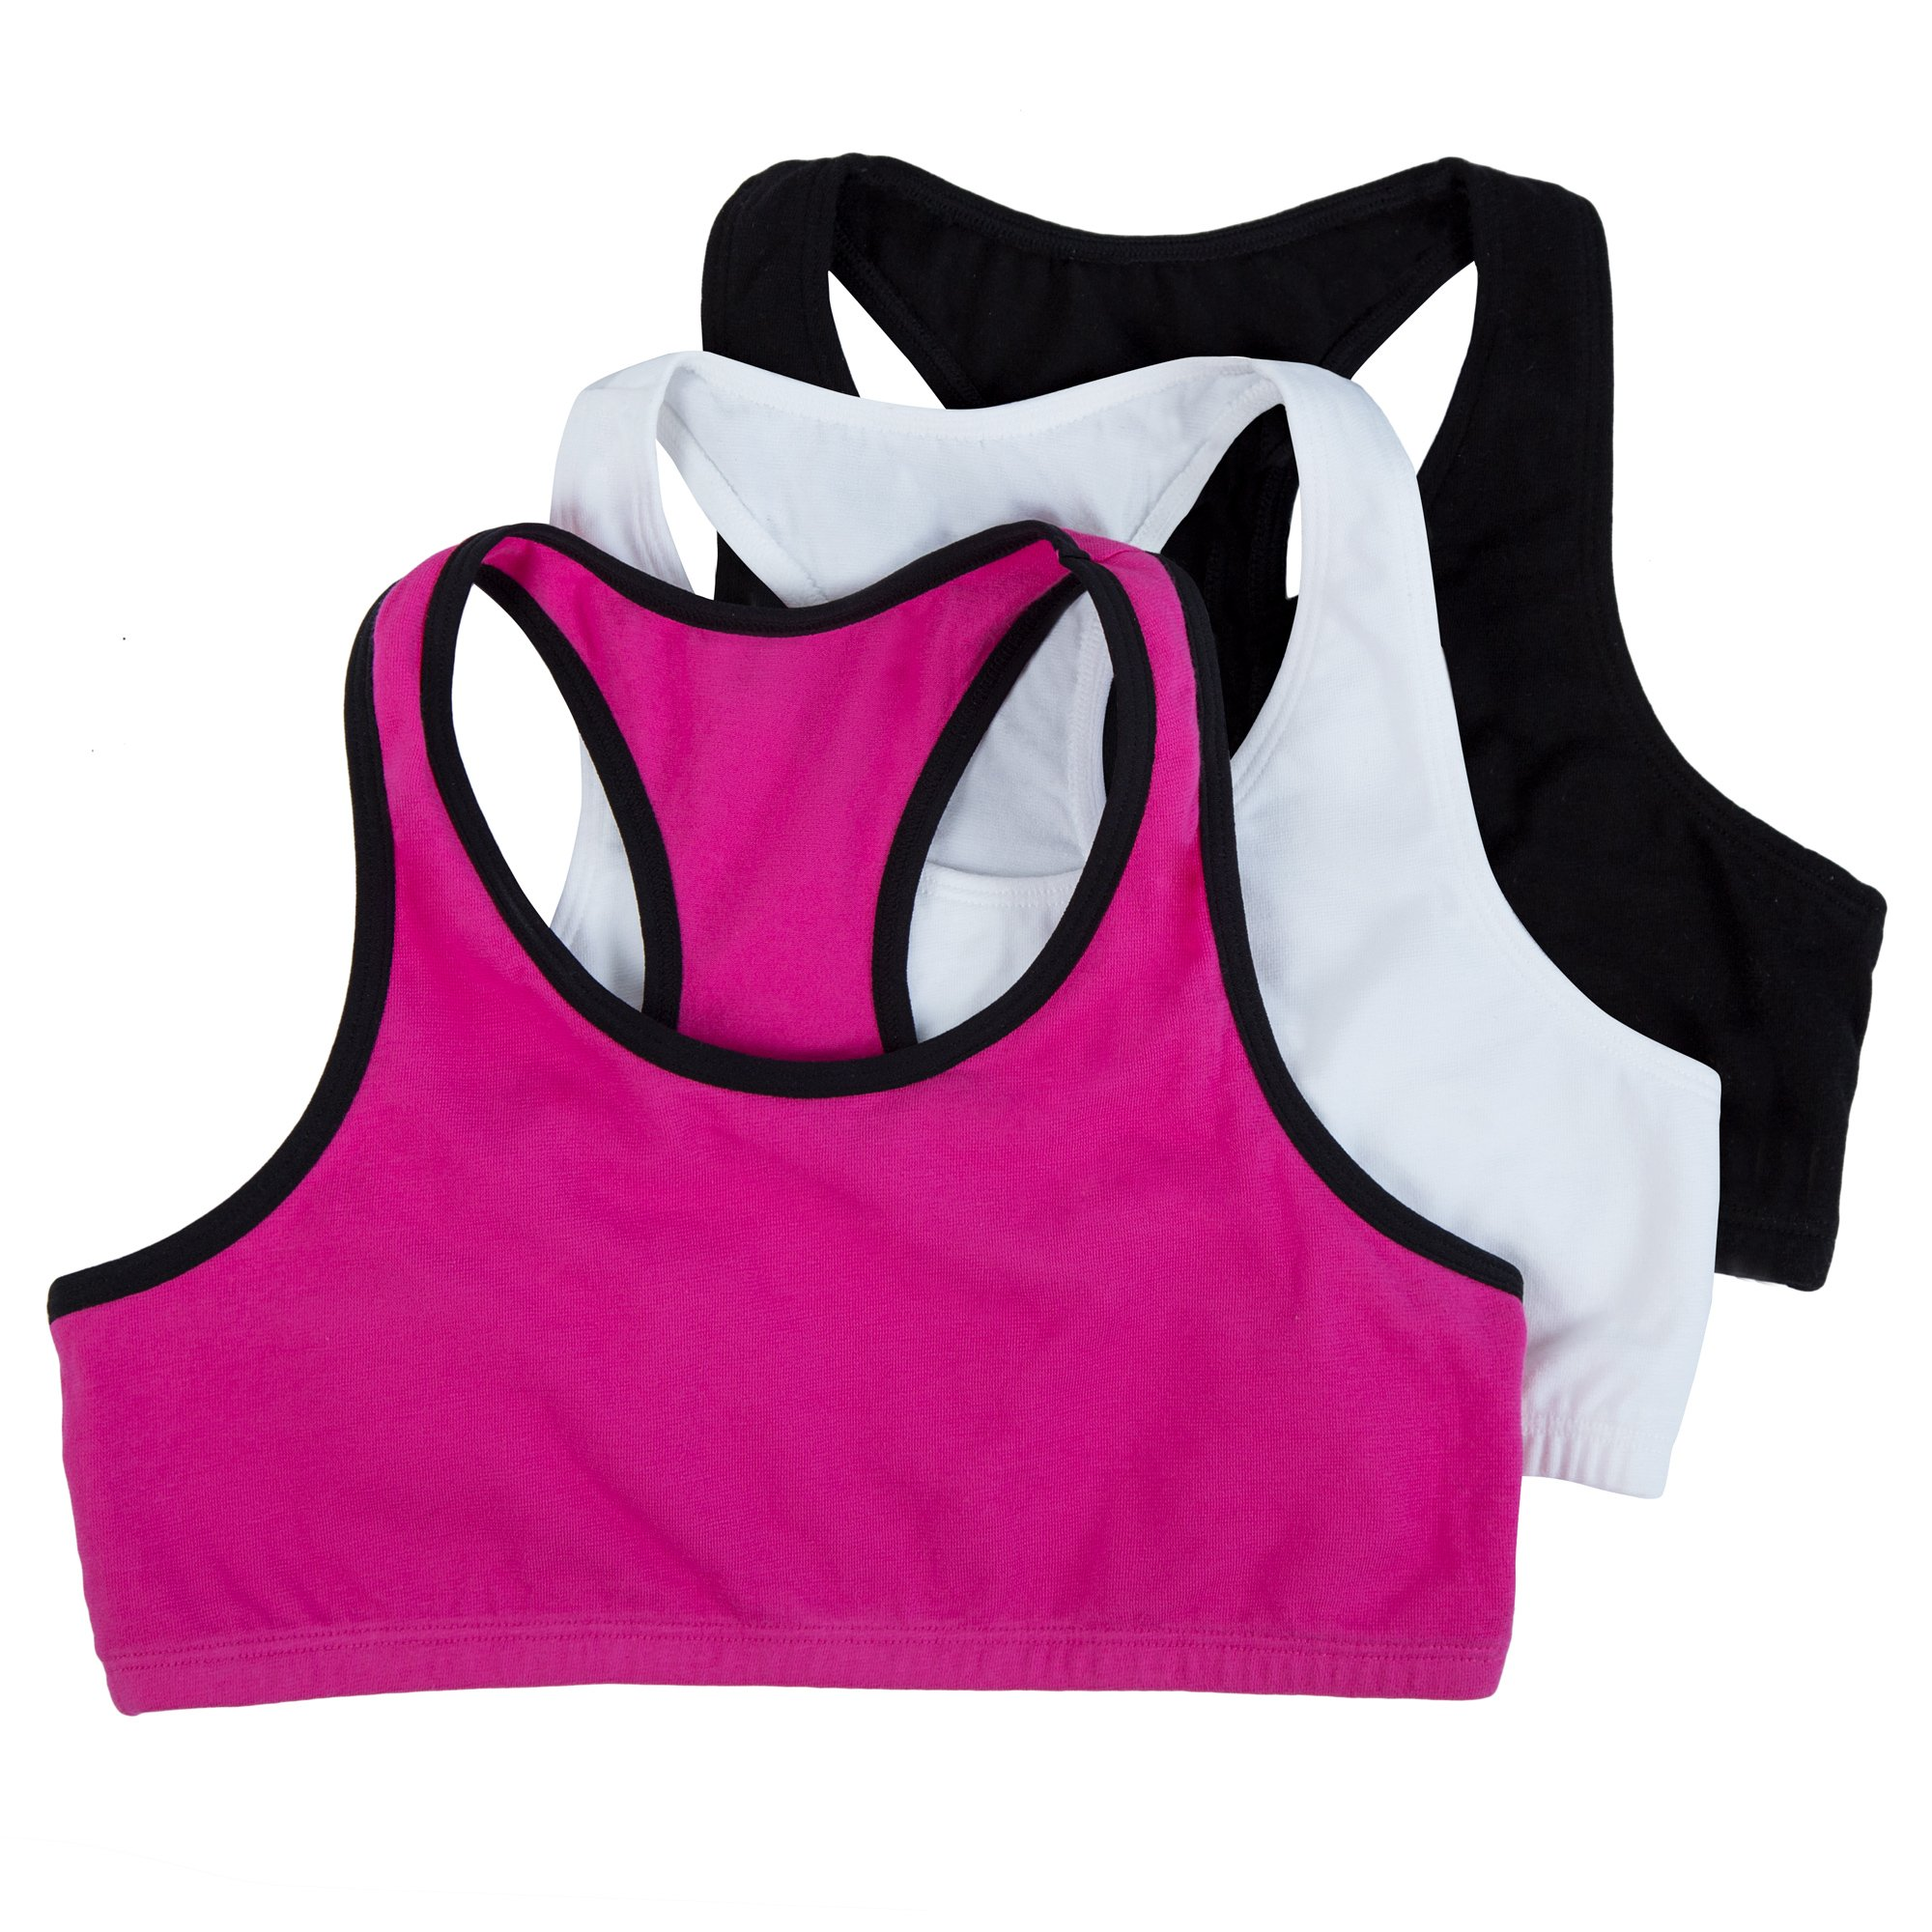 Fruit of the Loom Big Girl's Cotton Built-up Sport 3 Pack(Pack of 3) Bra, Passion Fruit with Black/White/Black, 36 by Fruit of the Loom